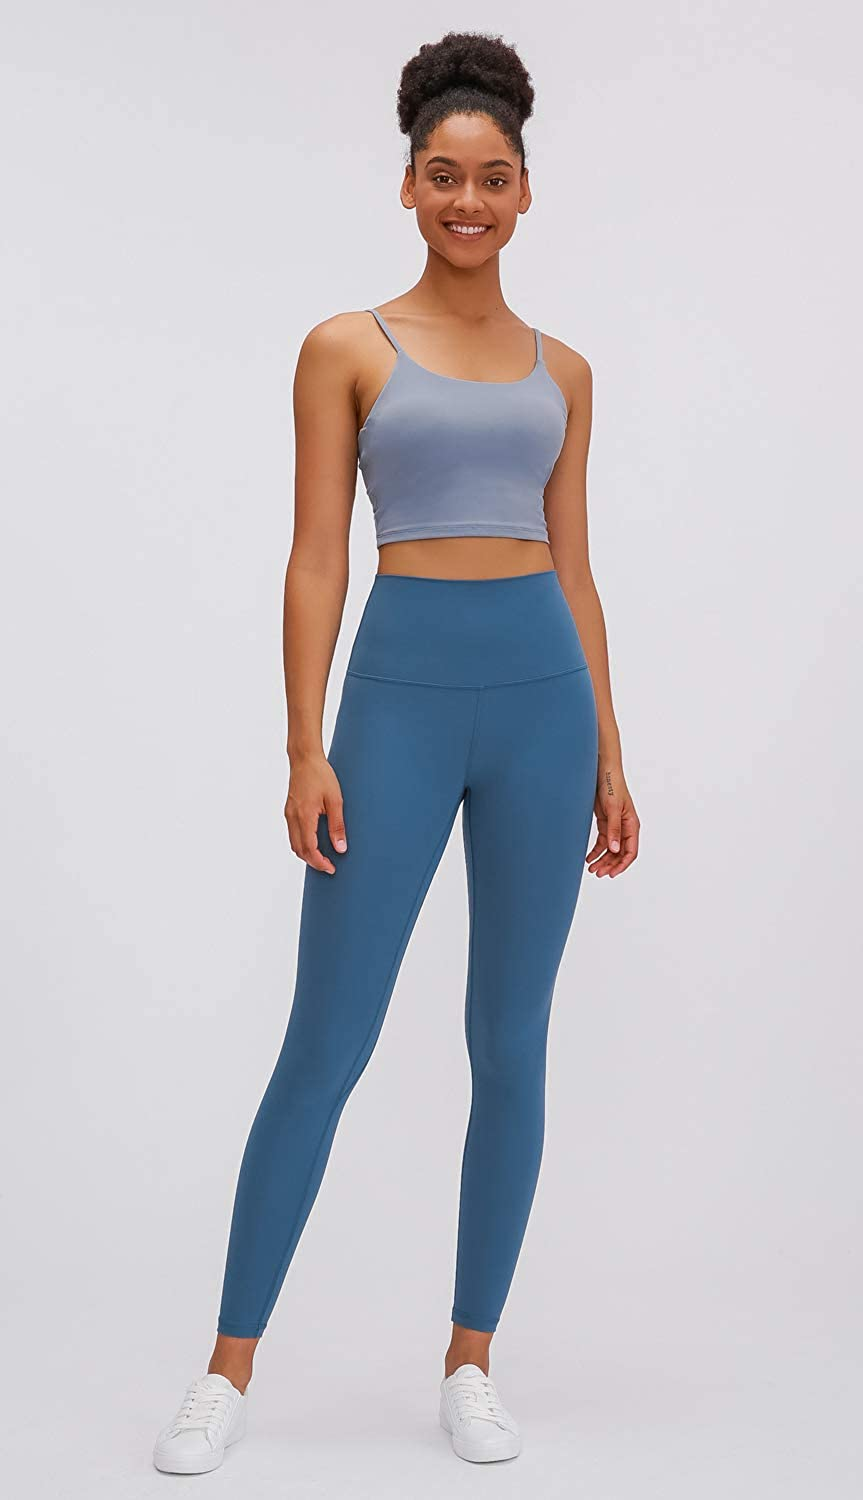 Wholesale price Septengo Womens Buttery Soft Yoga Pants